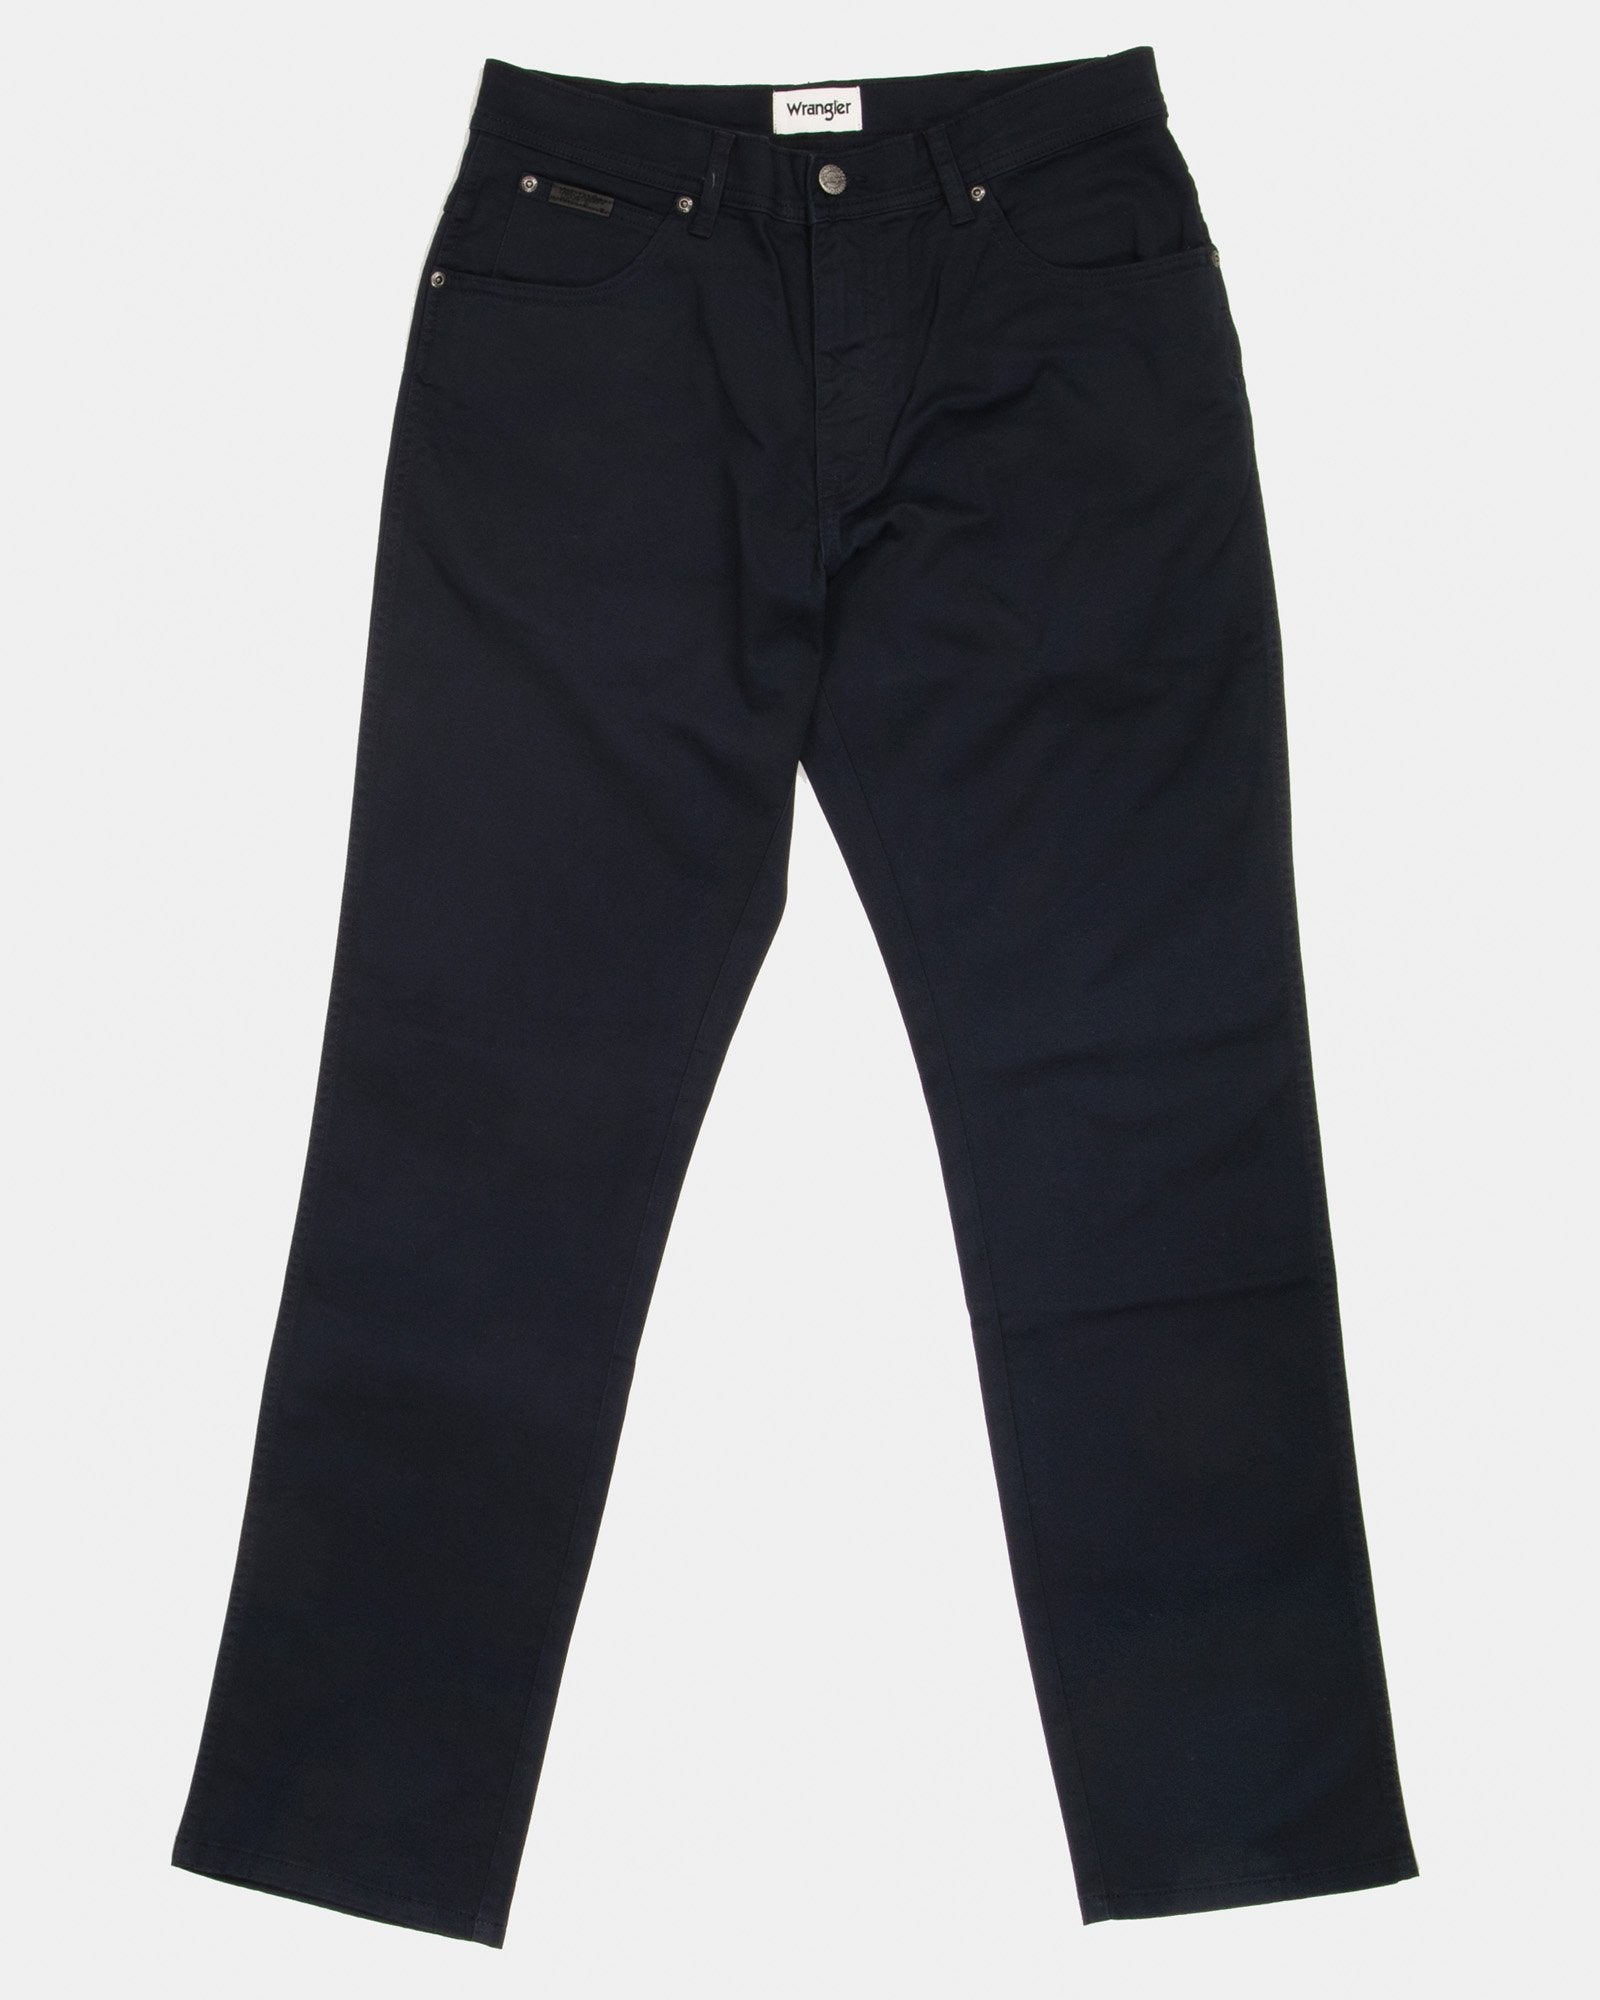 Wrangler Texas SLIM Mens Cotton Trousers - Navy W40 L30 W12SW311440S Wrangler Chinos & Non-Denim Pants